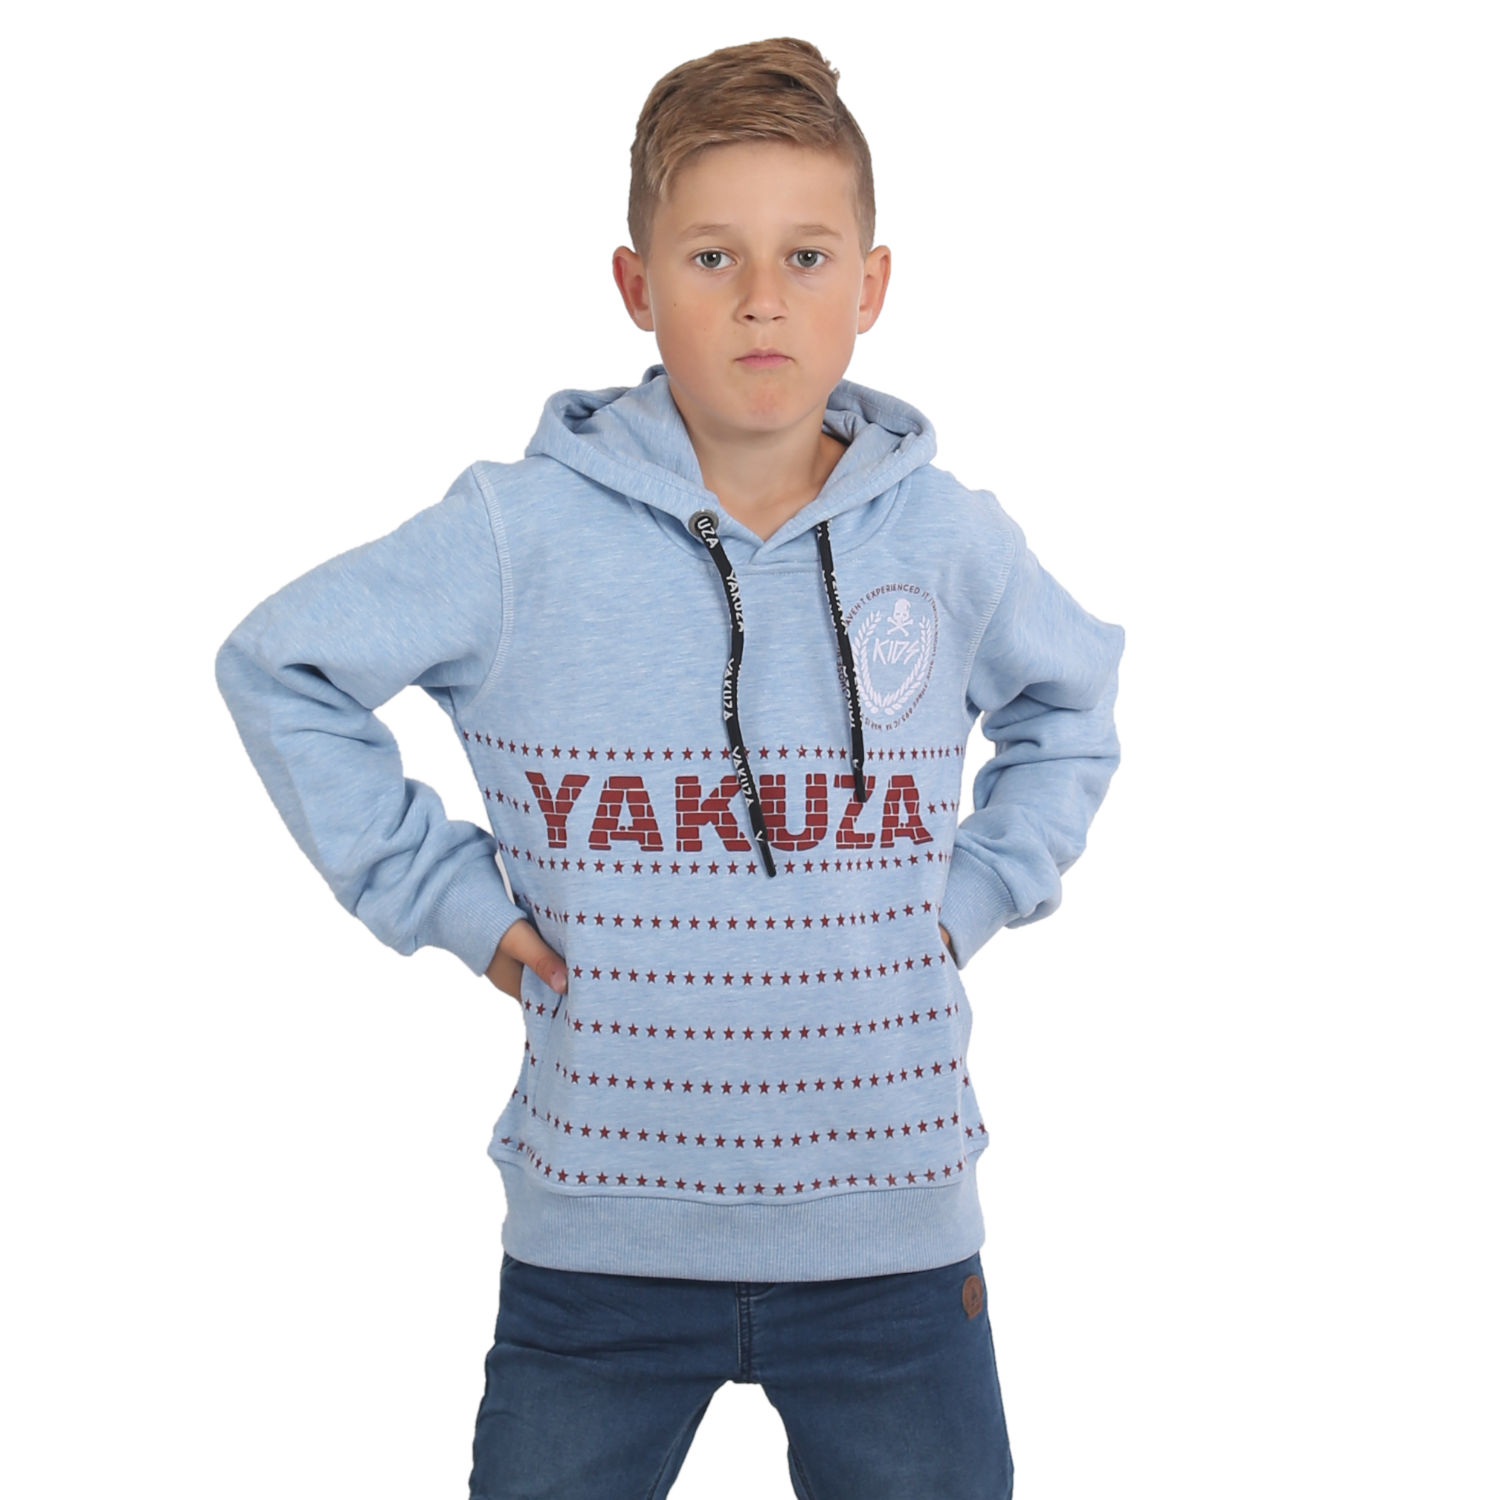 Yakuza, War is Sweet Kids Hoodie, HOB15401 TURMEL 164/170